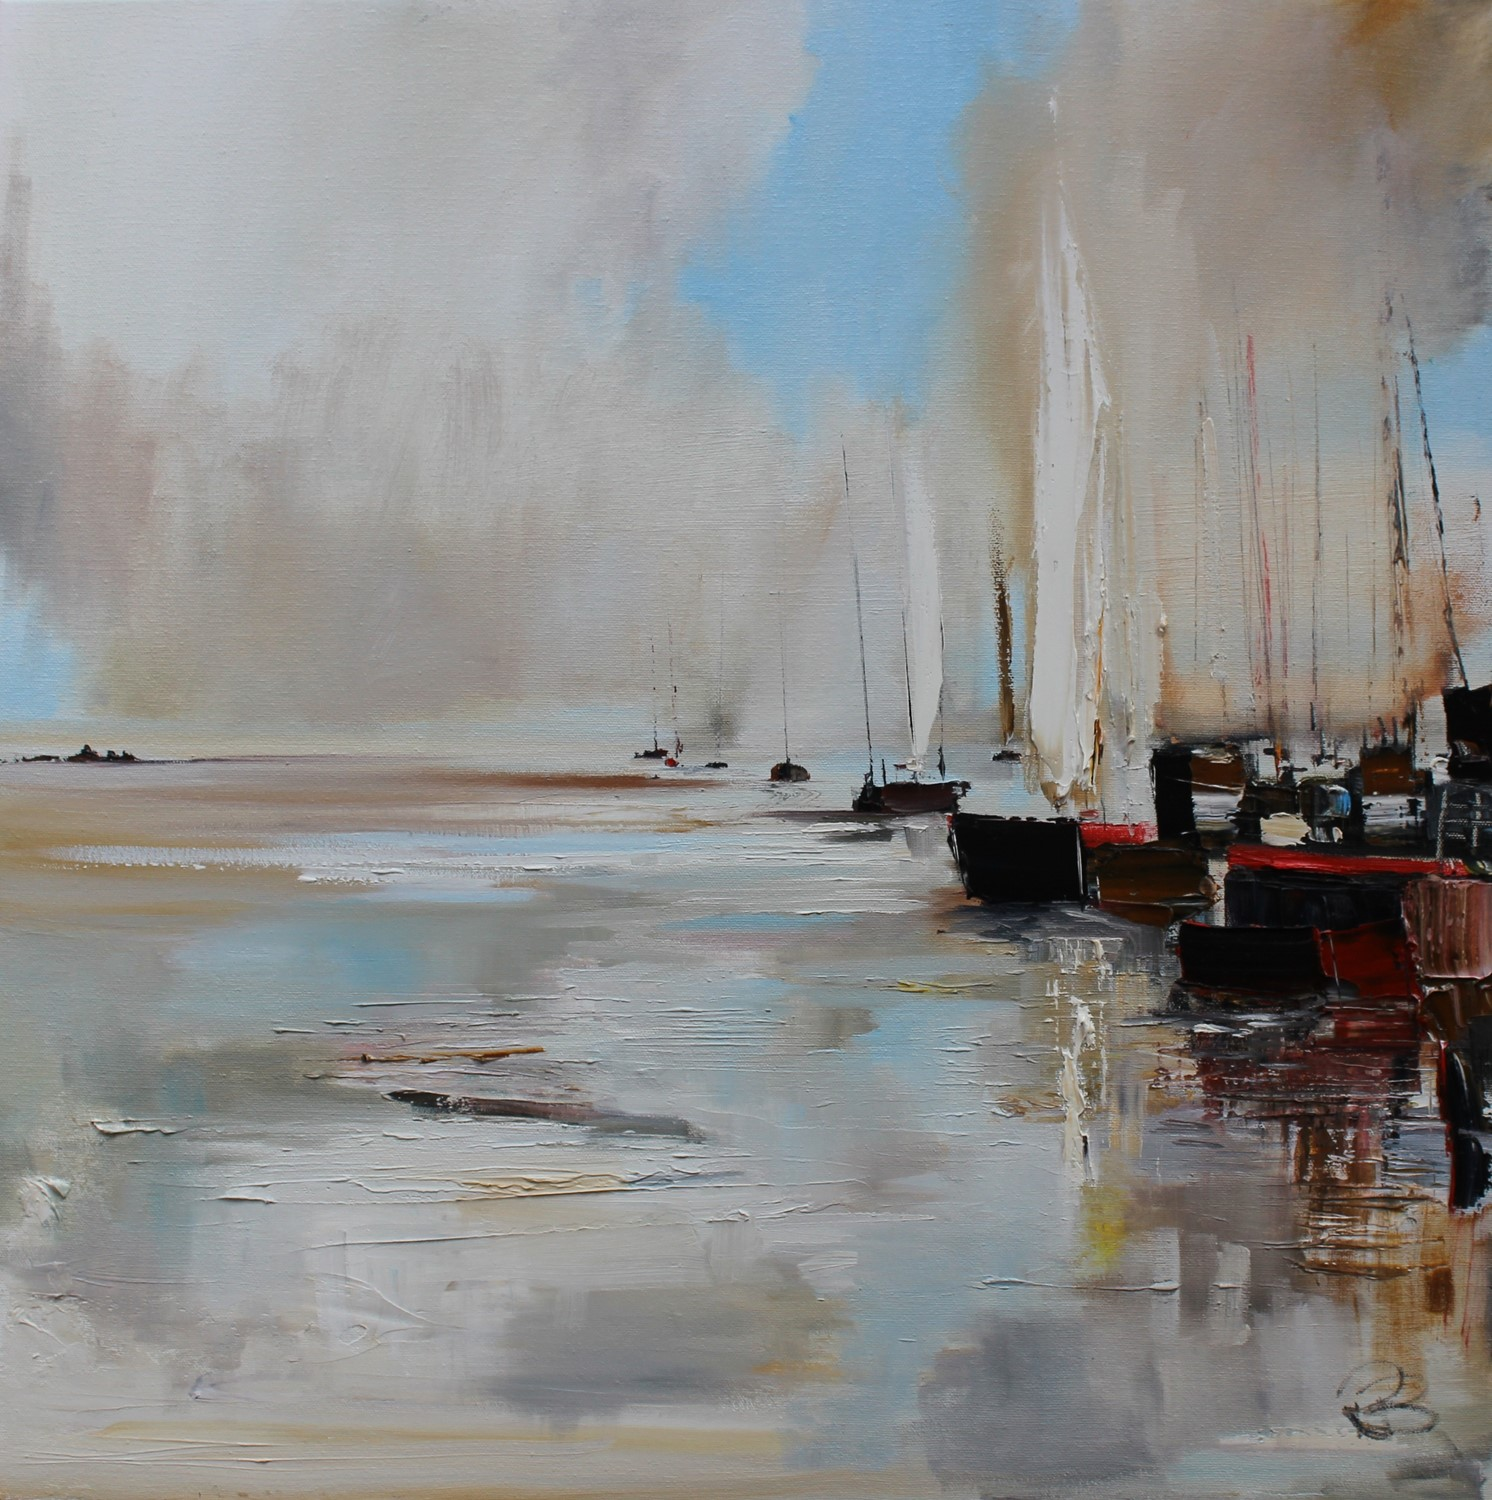 'Gathered at the Quay' by artist Rosanne Barr